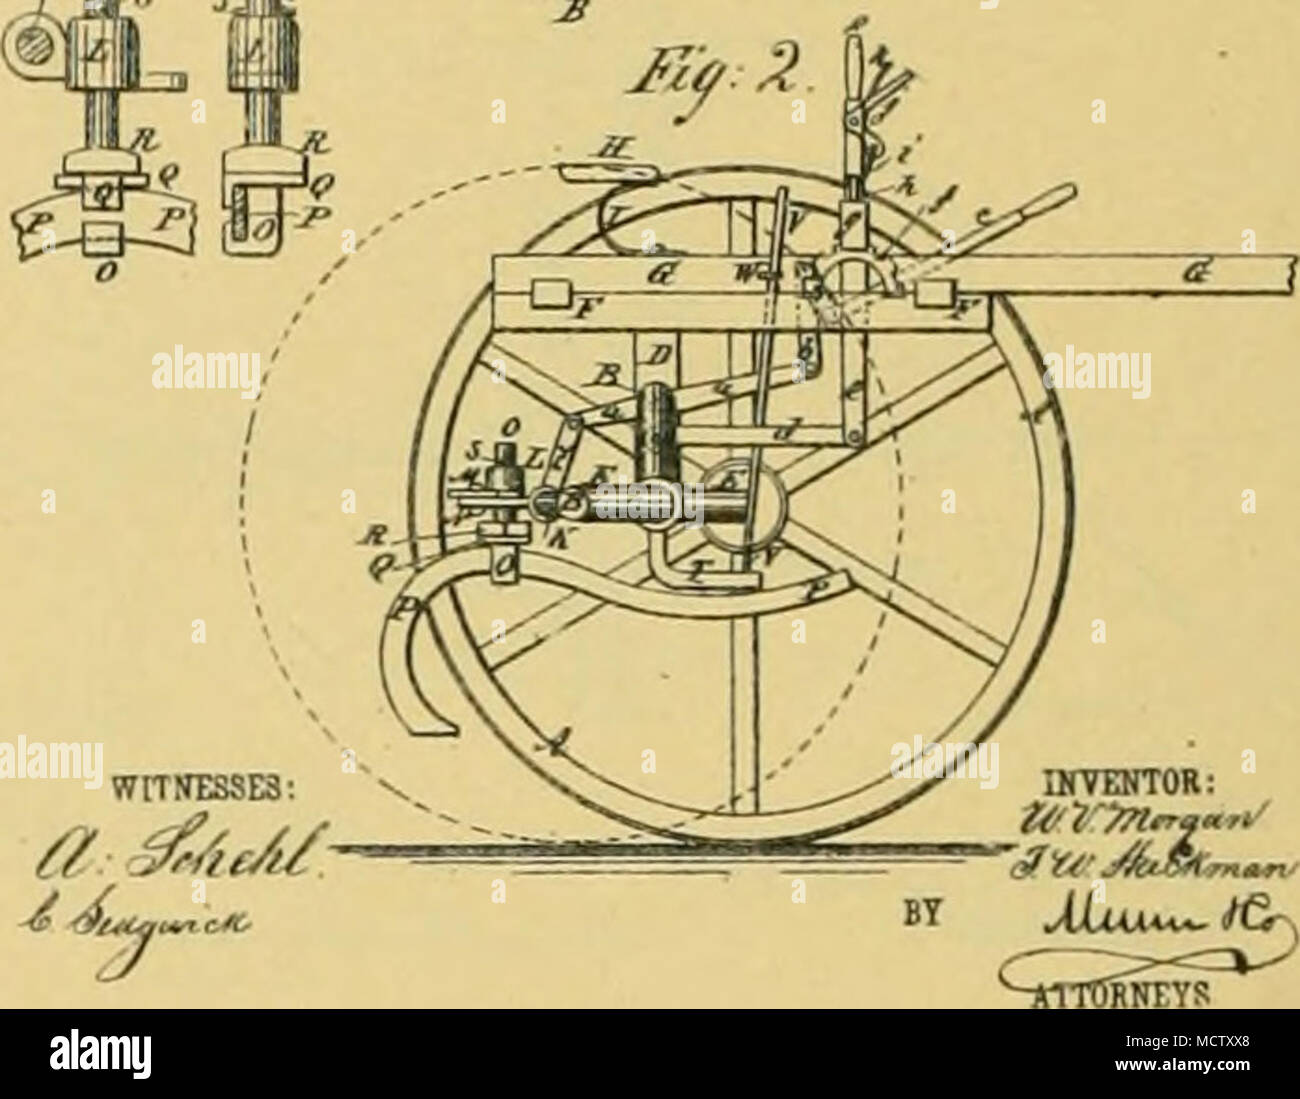 . No. 232,268. T. T. HARBISON Sulky Plow. Patented Sept. 14, 1880. T. T. HAREISON. Snlkj Plow. No. 232,268. Patented Sept. 14, 1880. - Stock Image